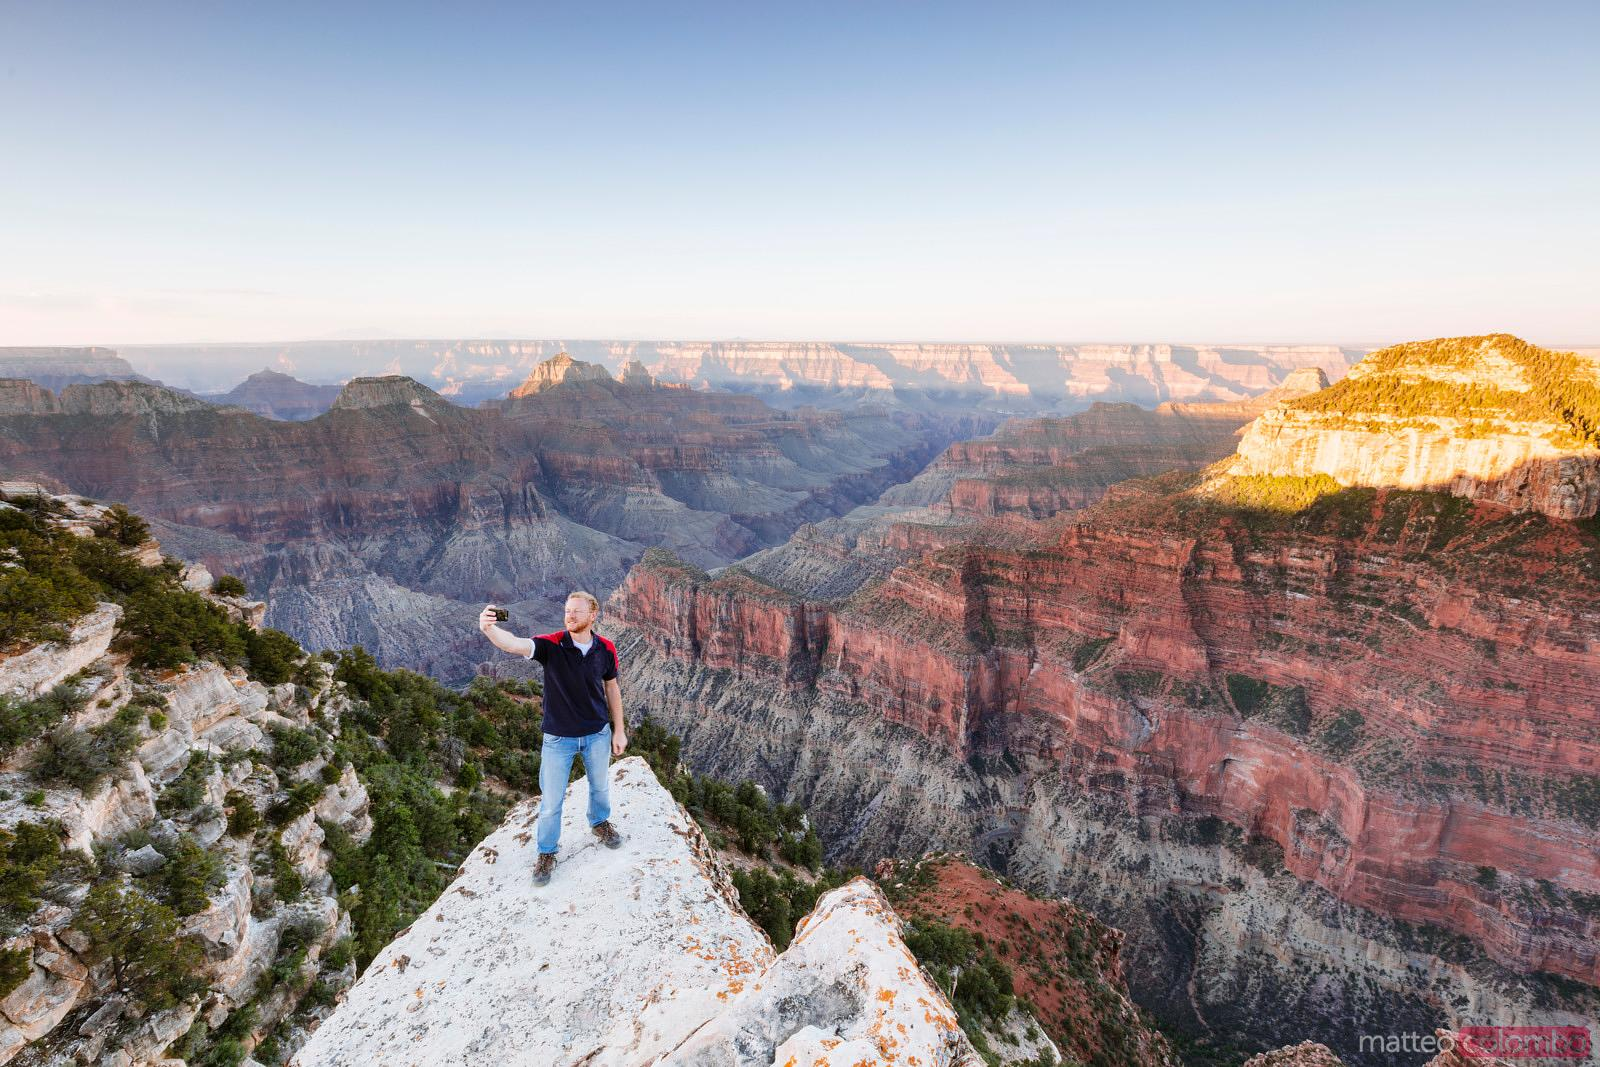 Man taking a selfie on the edge of Grand Canyon, USA